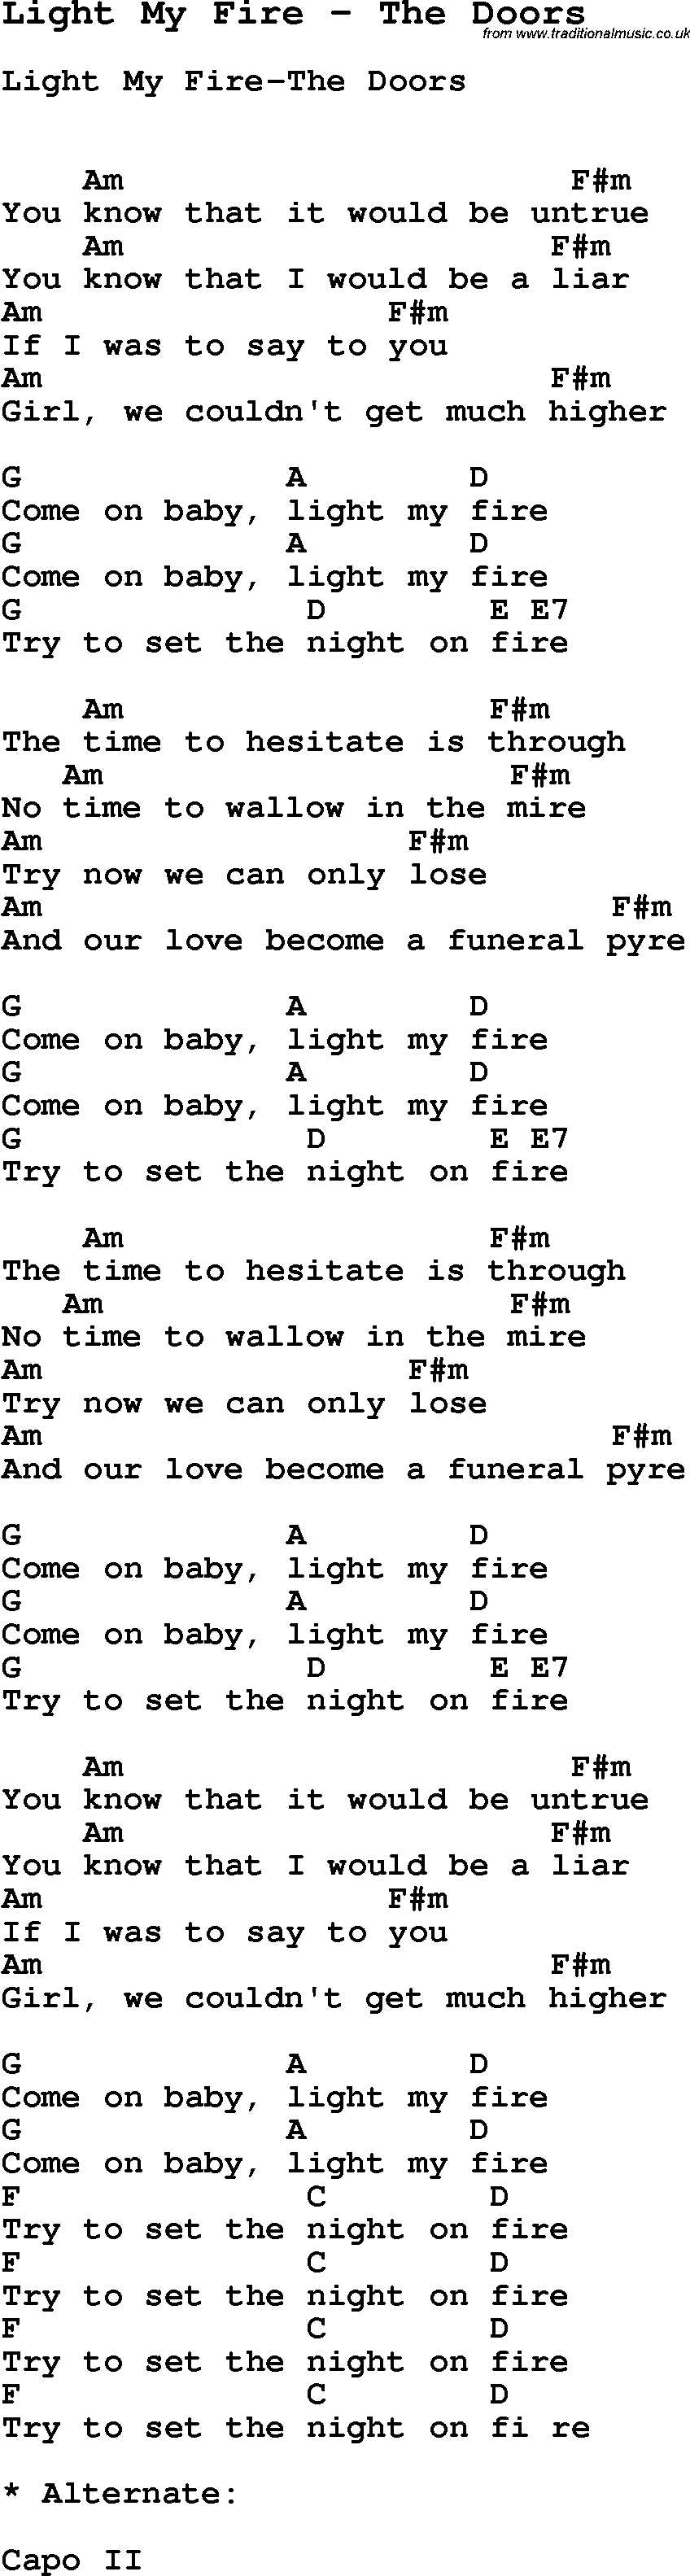 Song Light My Fire by The Doors with lyrics for vocal performance and accompaniment chords  sc 1 st  Pinterest & Song Light My Fire by The Doors with lyrics for vocal performance ... pezcame.com